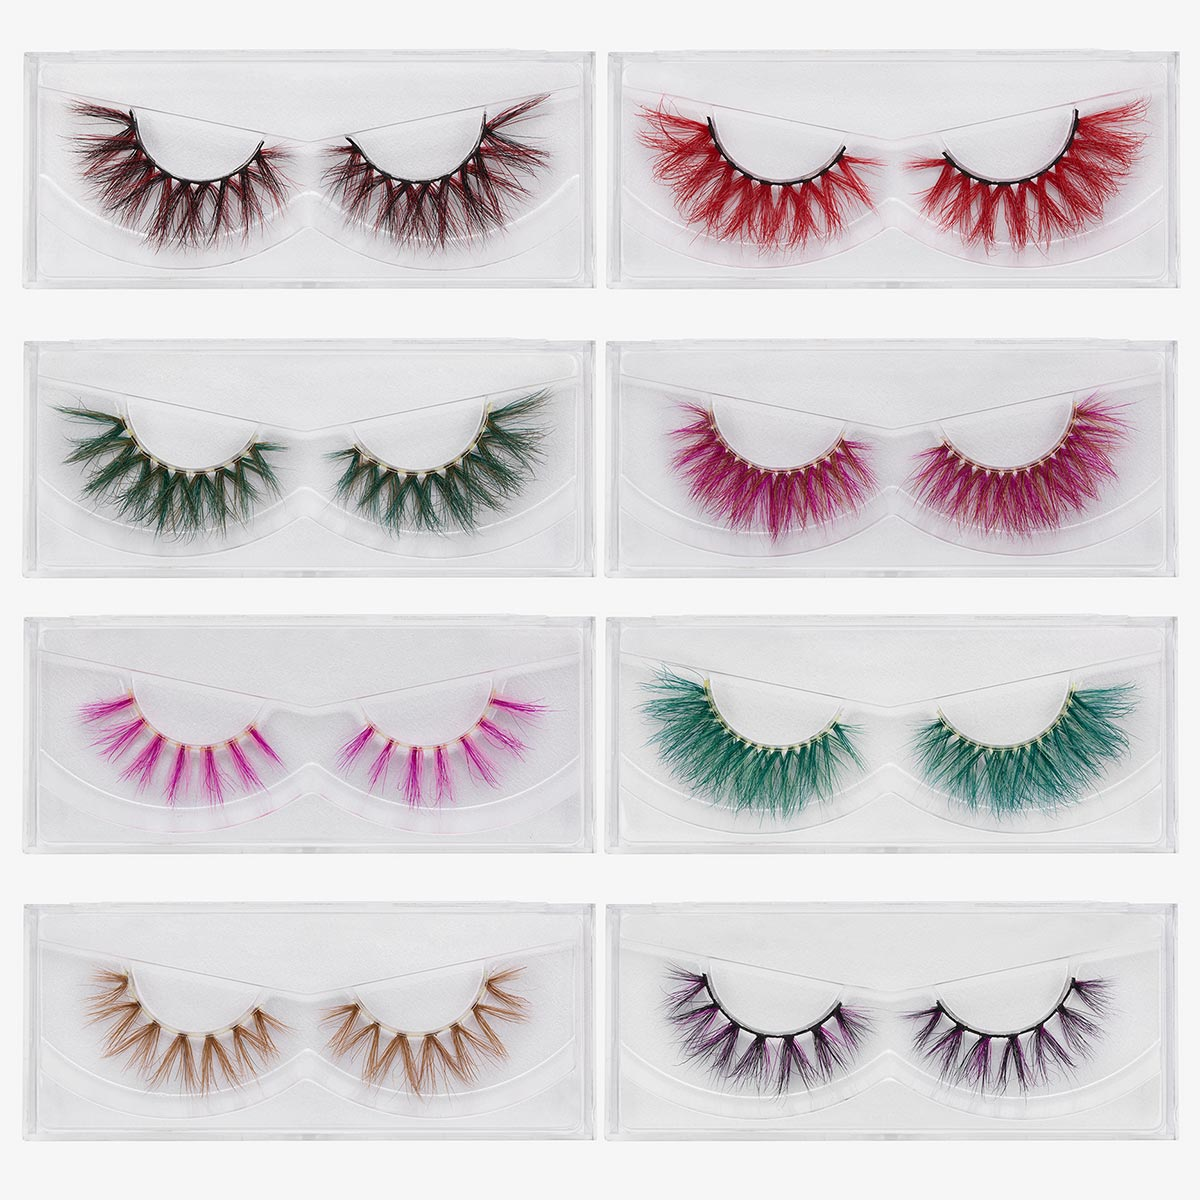 New Color 3D Luxury Mink Lashes  Natural Long Individual Thick Fluffy Colorful False Eyelashes Makeup Extension Tools